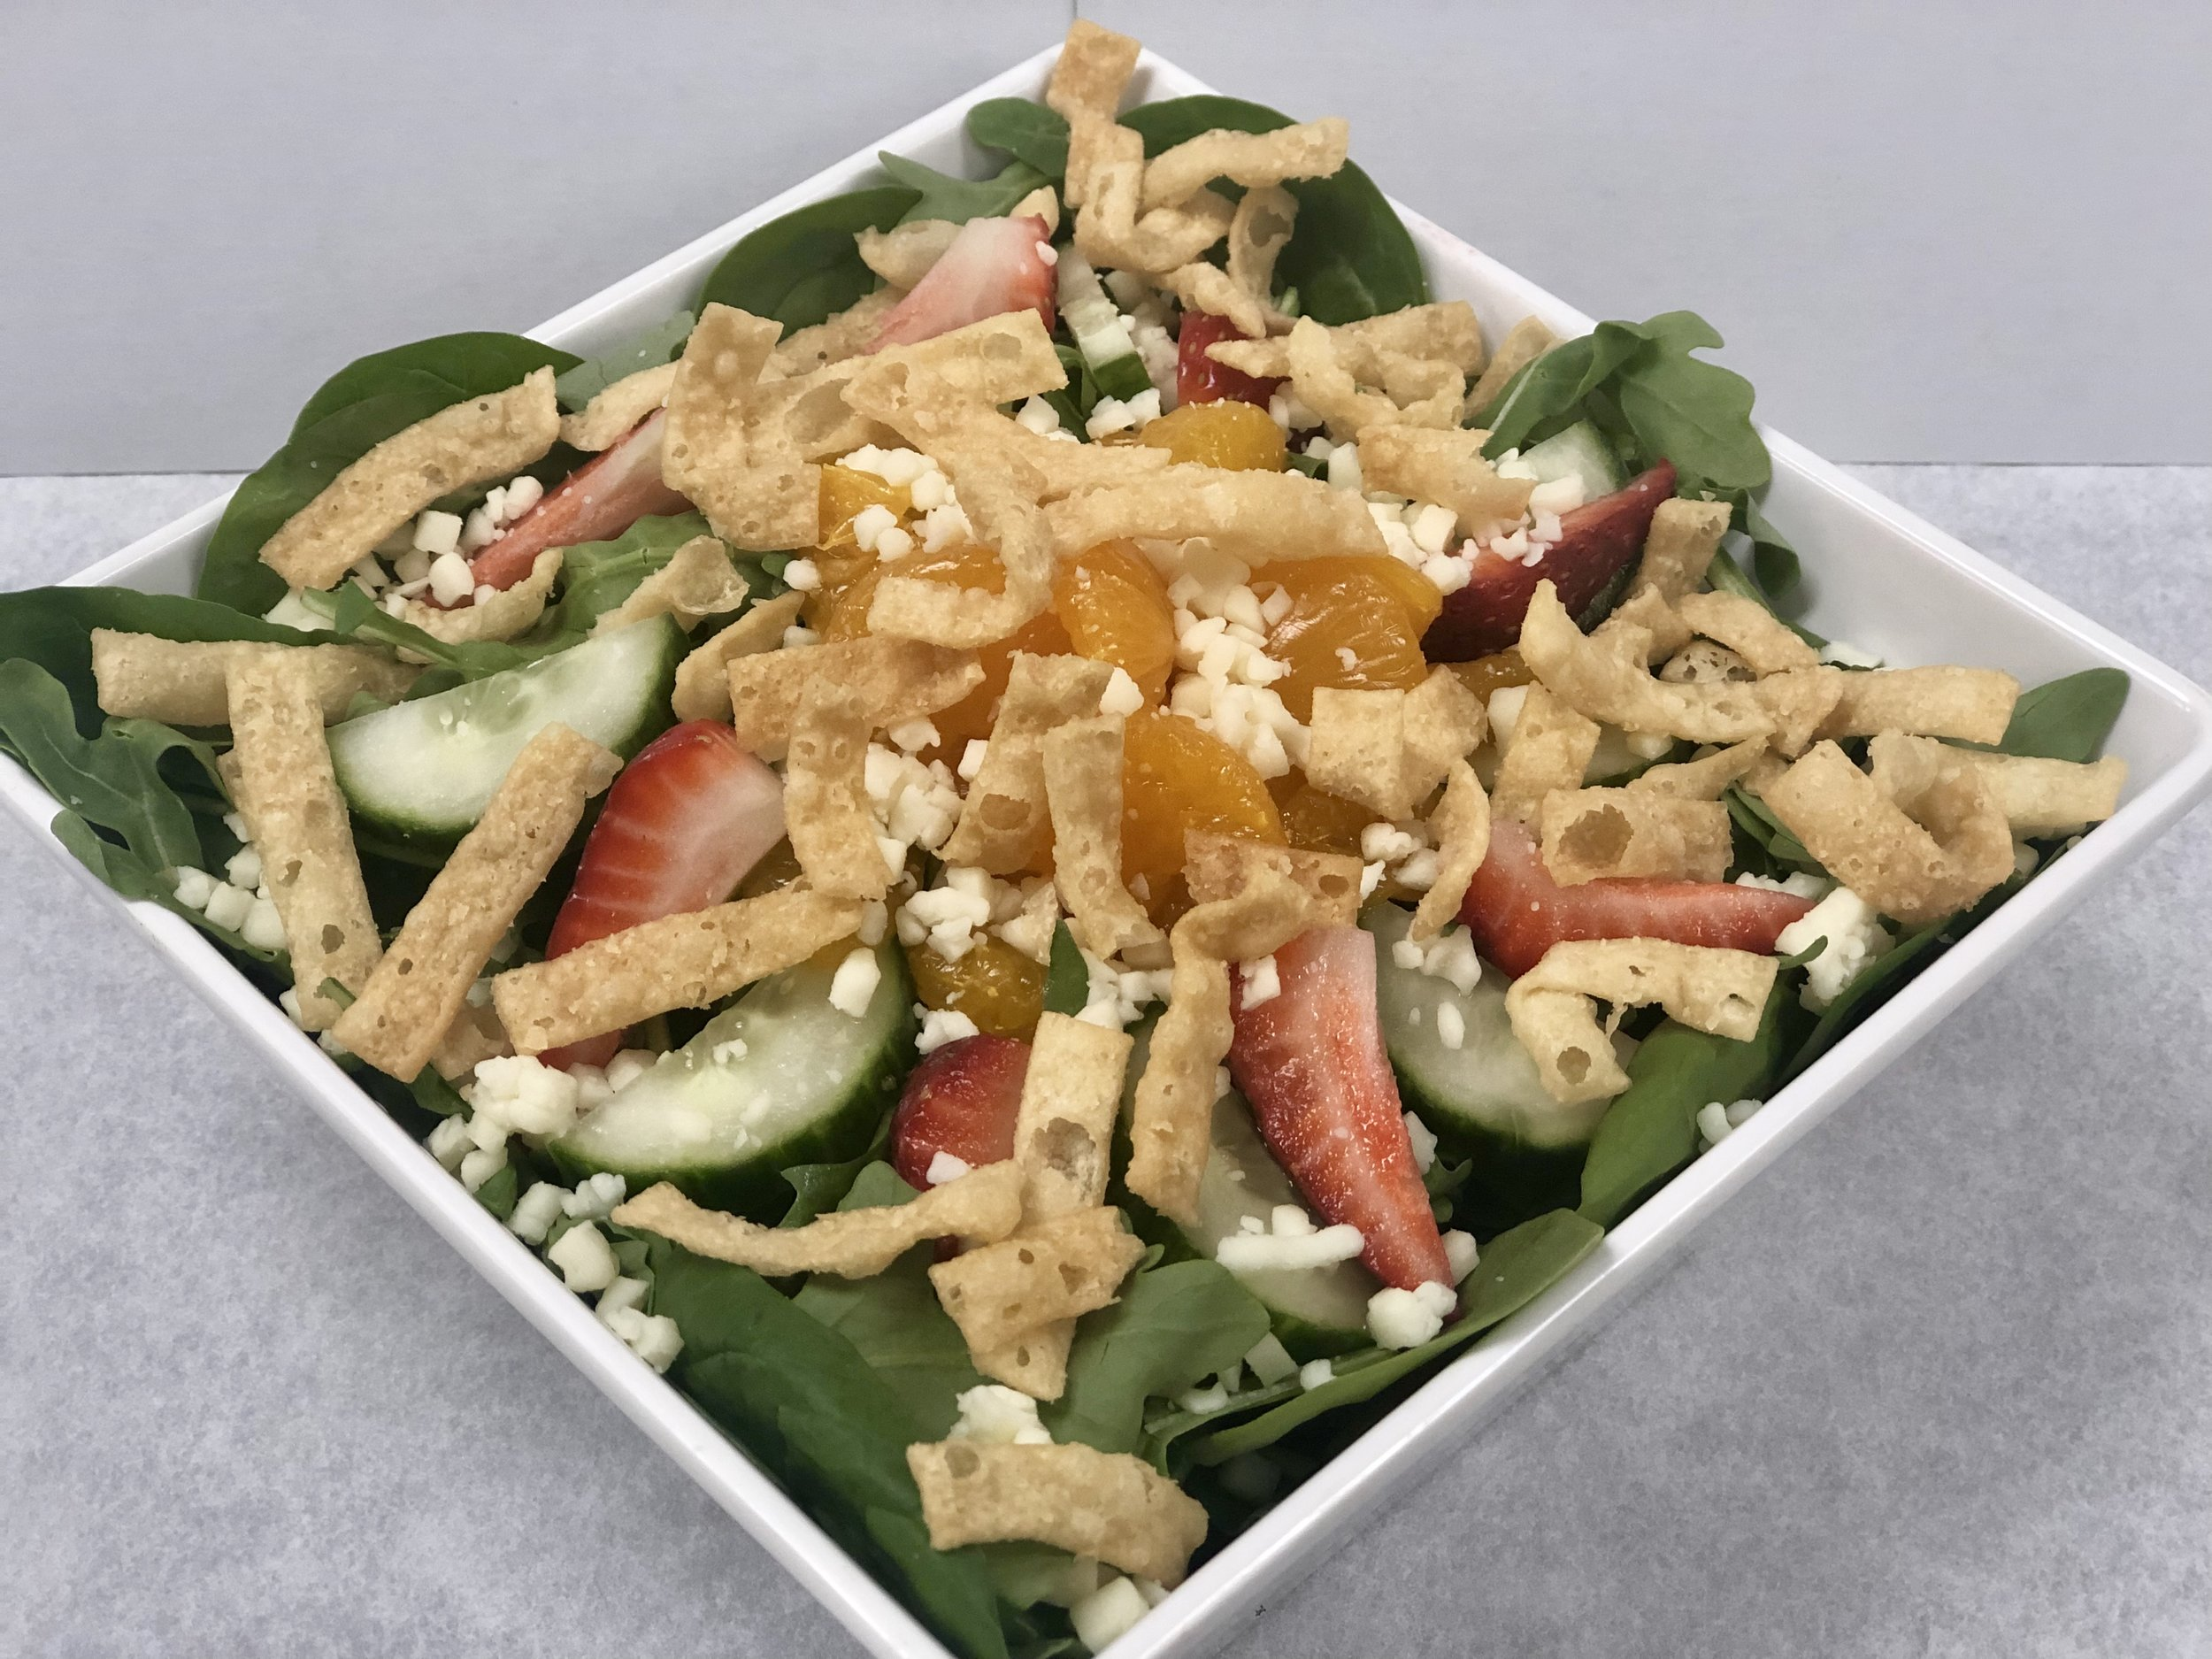 Summer Salad   Strawberries, mandarin oranges, mozzarella cheese, cucumbers, and won-ton strips over a bed of spinach and arugula.   Small: 8.99 Large: 10.99